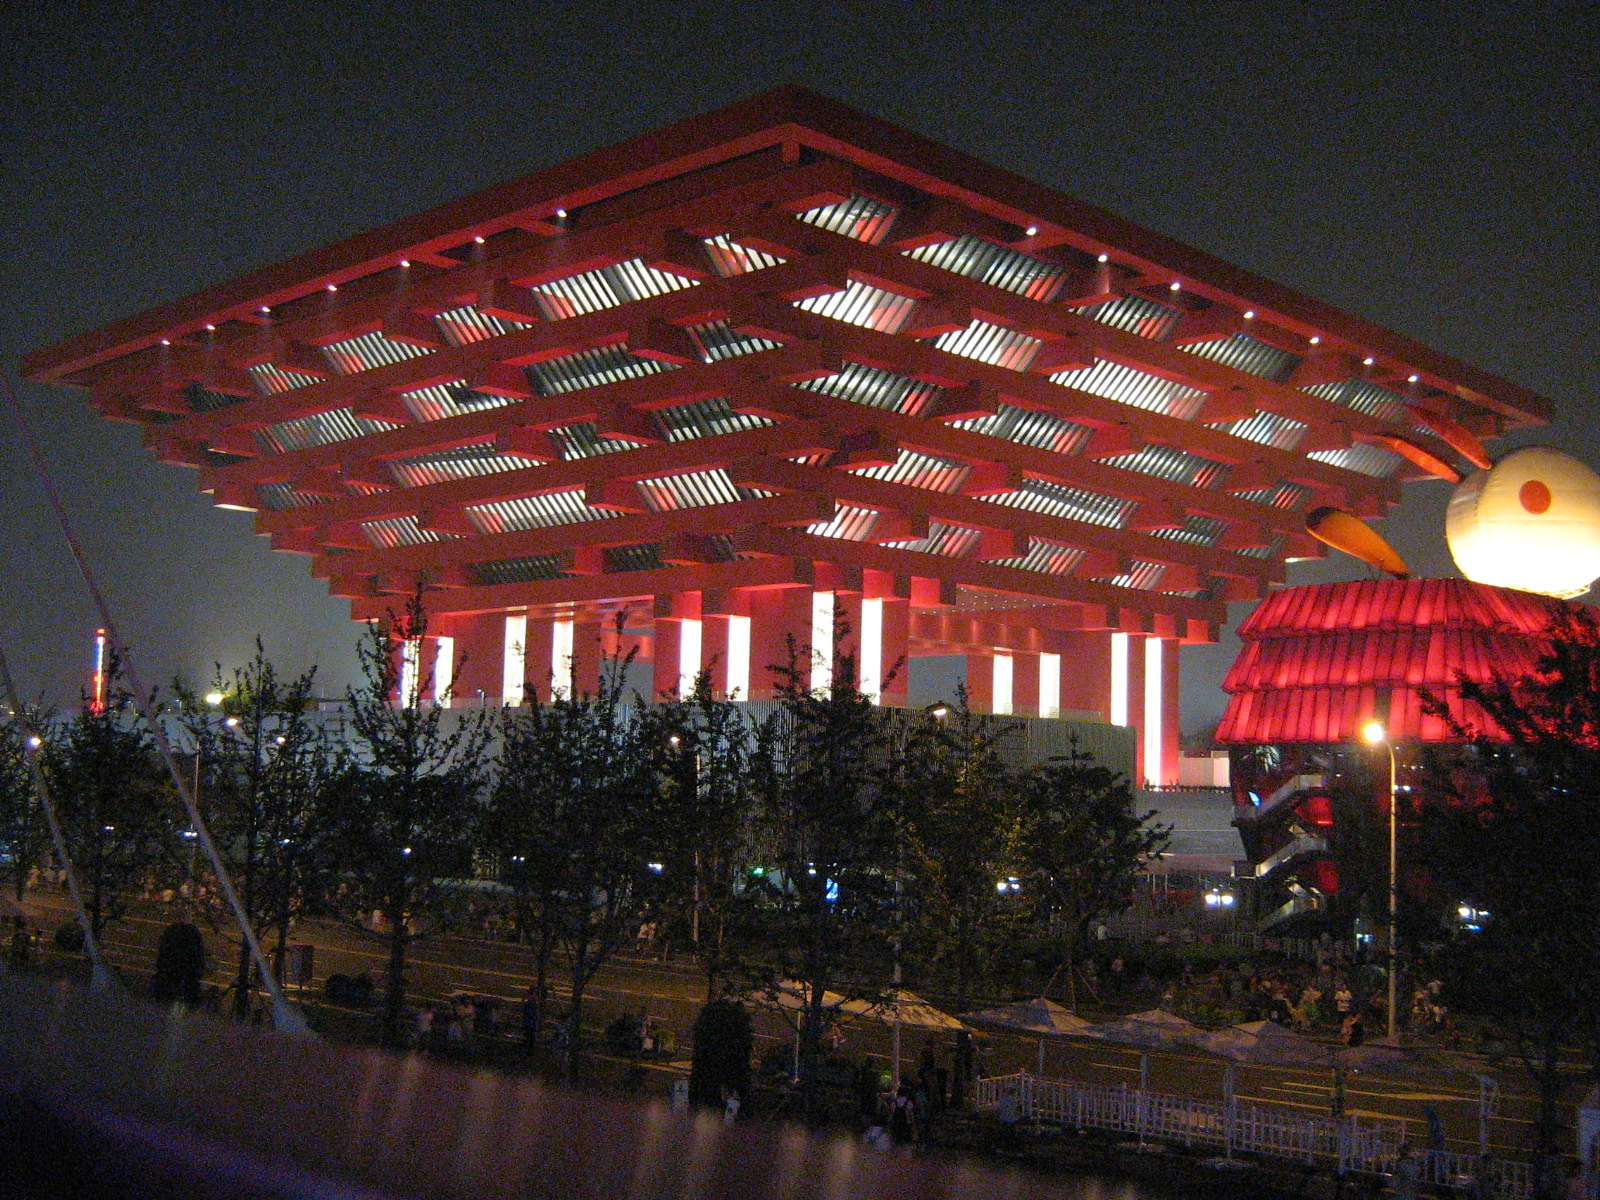 File:China Pavillion at 2010 Shanghai Expo.jpg - Wikimedia Commons